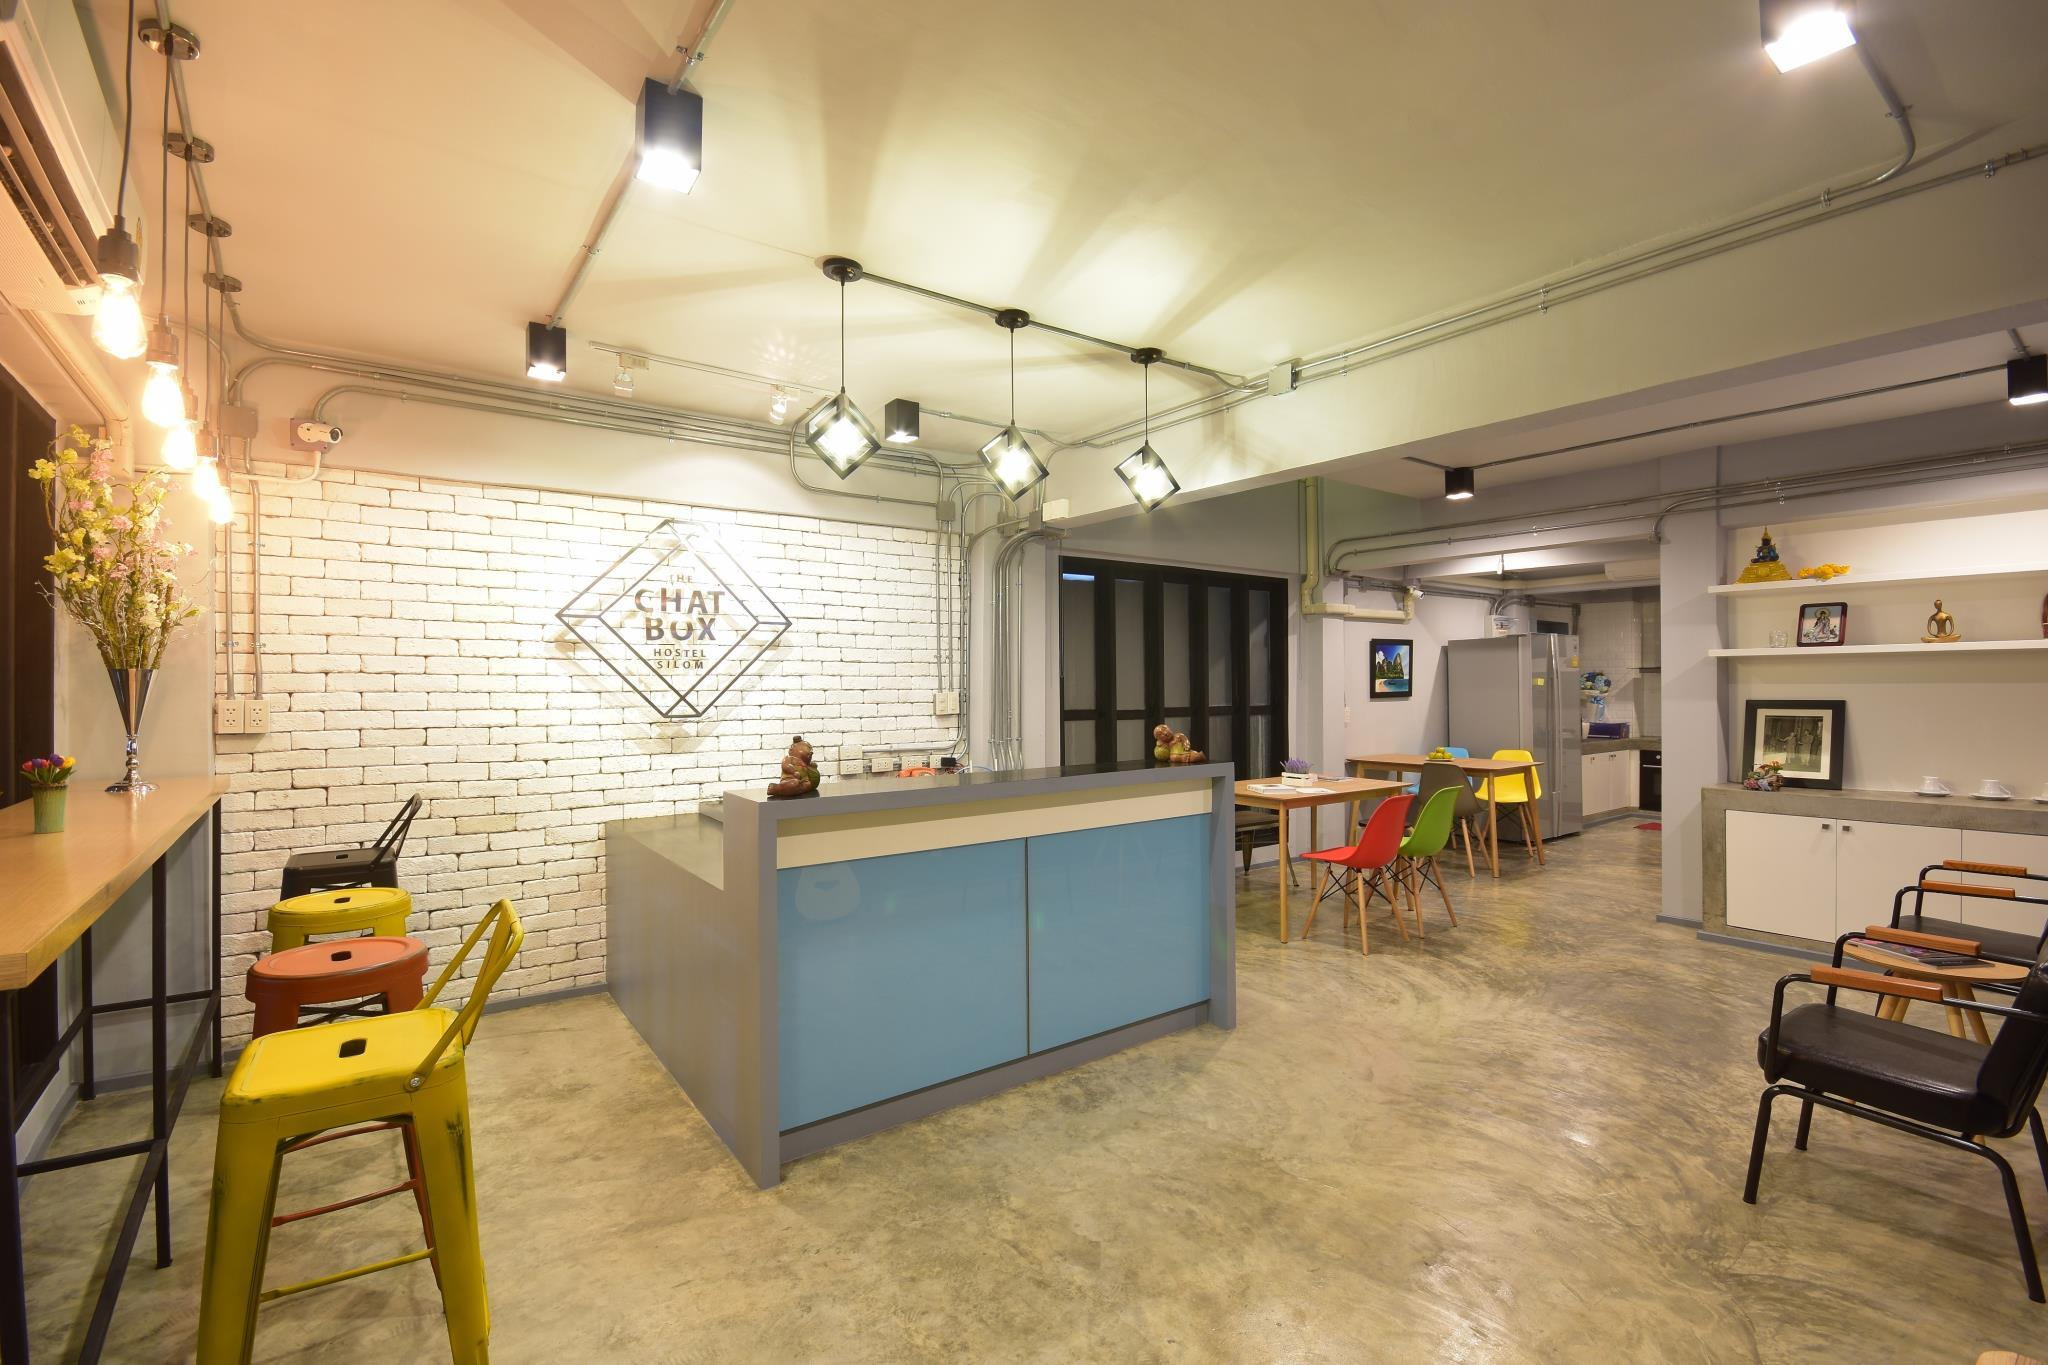 The Chatbox Silom Hostel Reviews